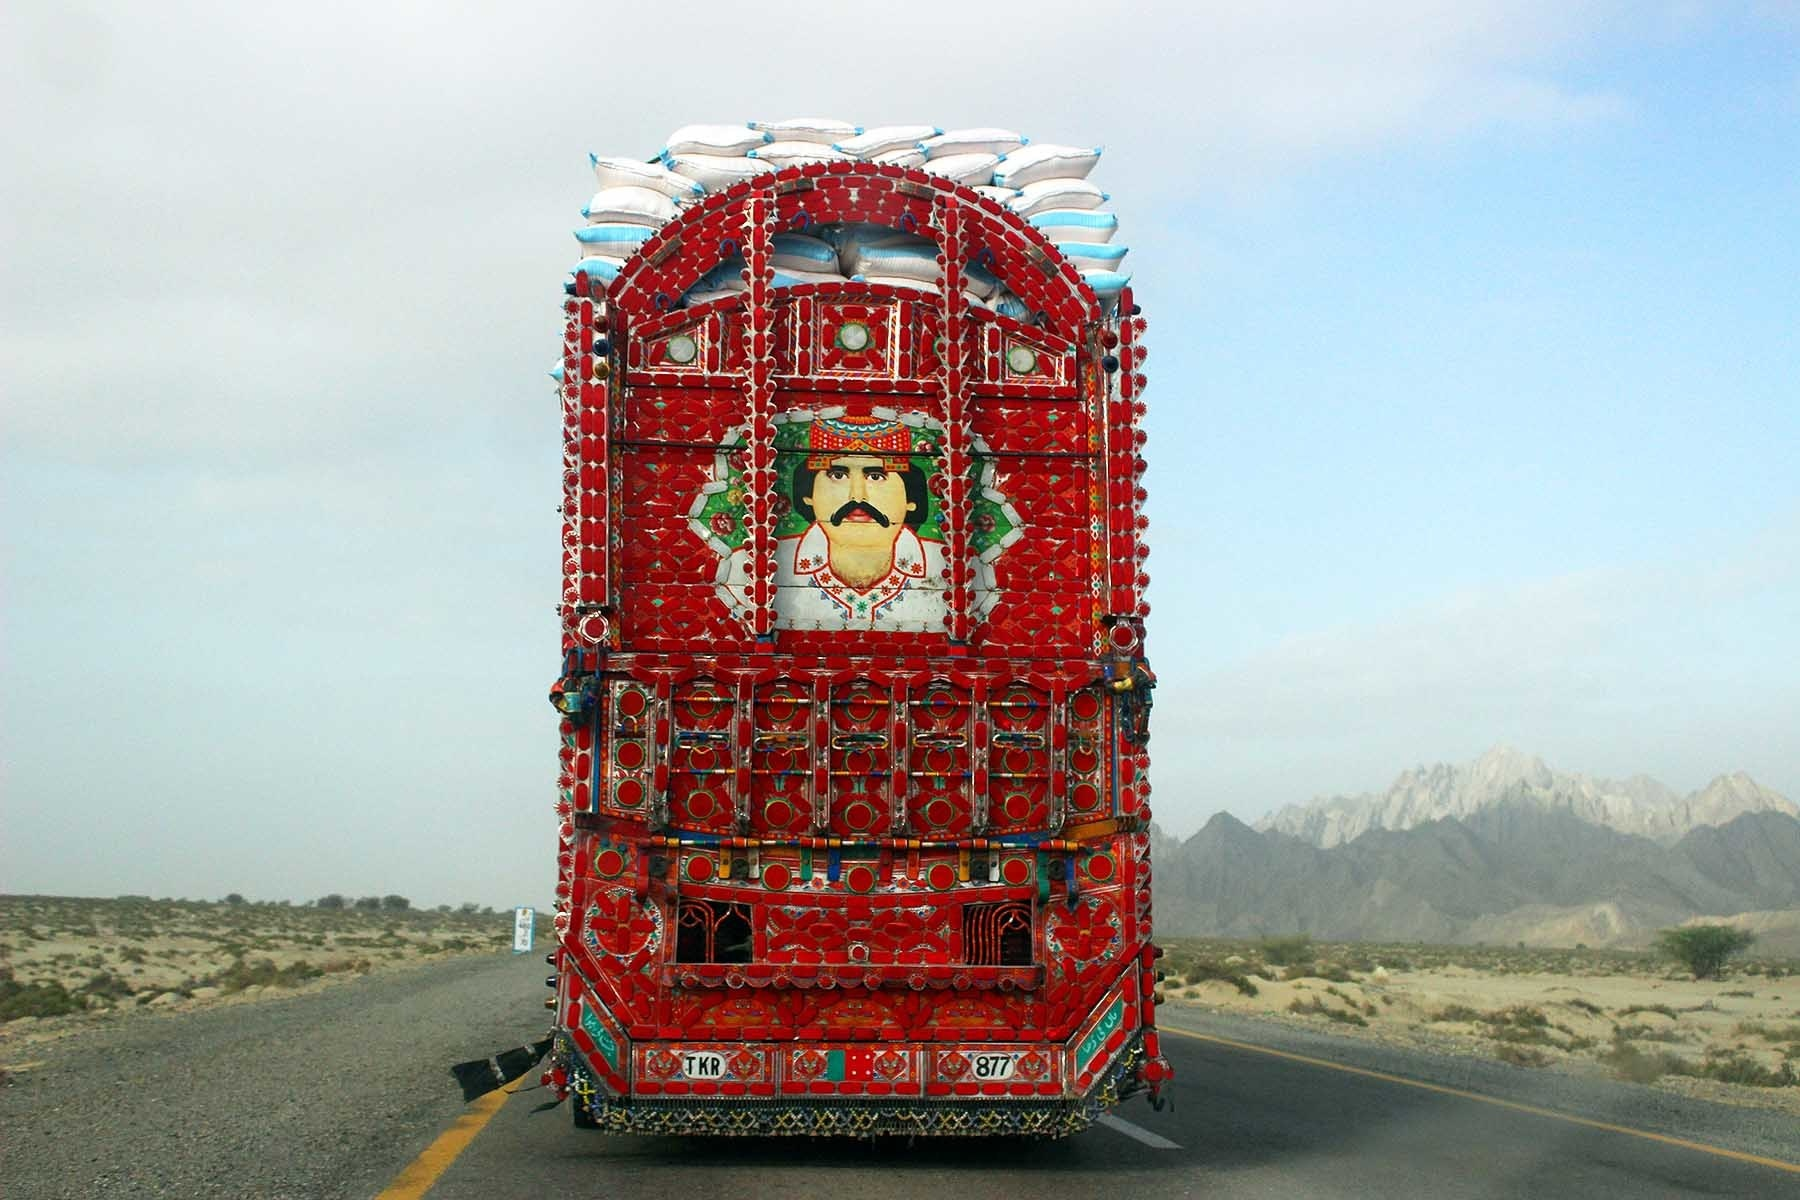 A truck driver has painted his portrait at the back of his truck.